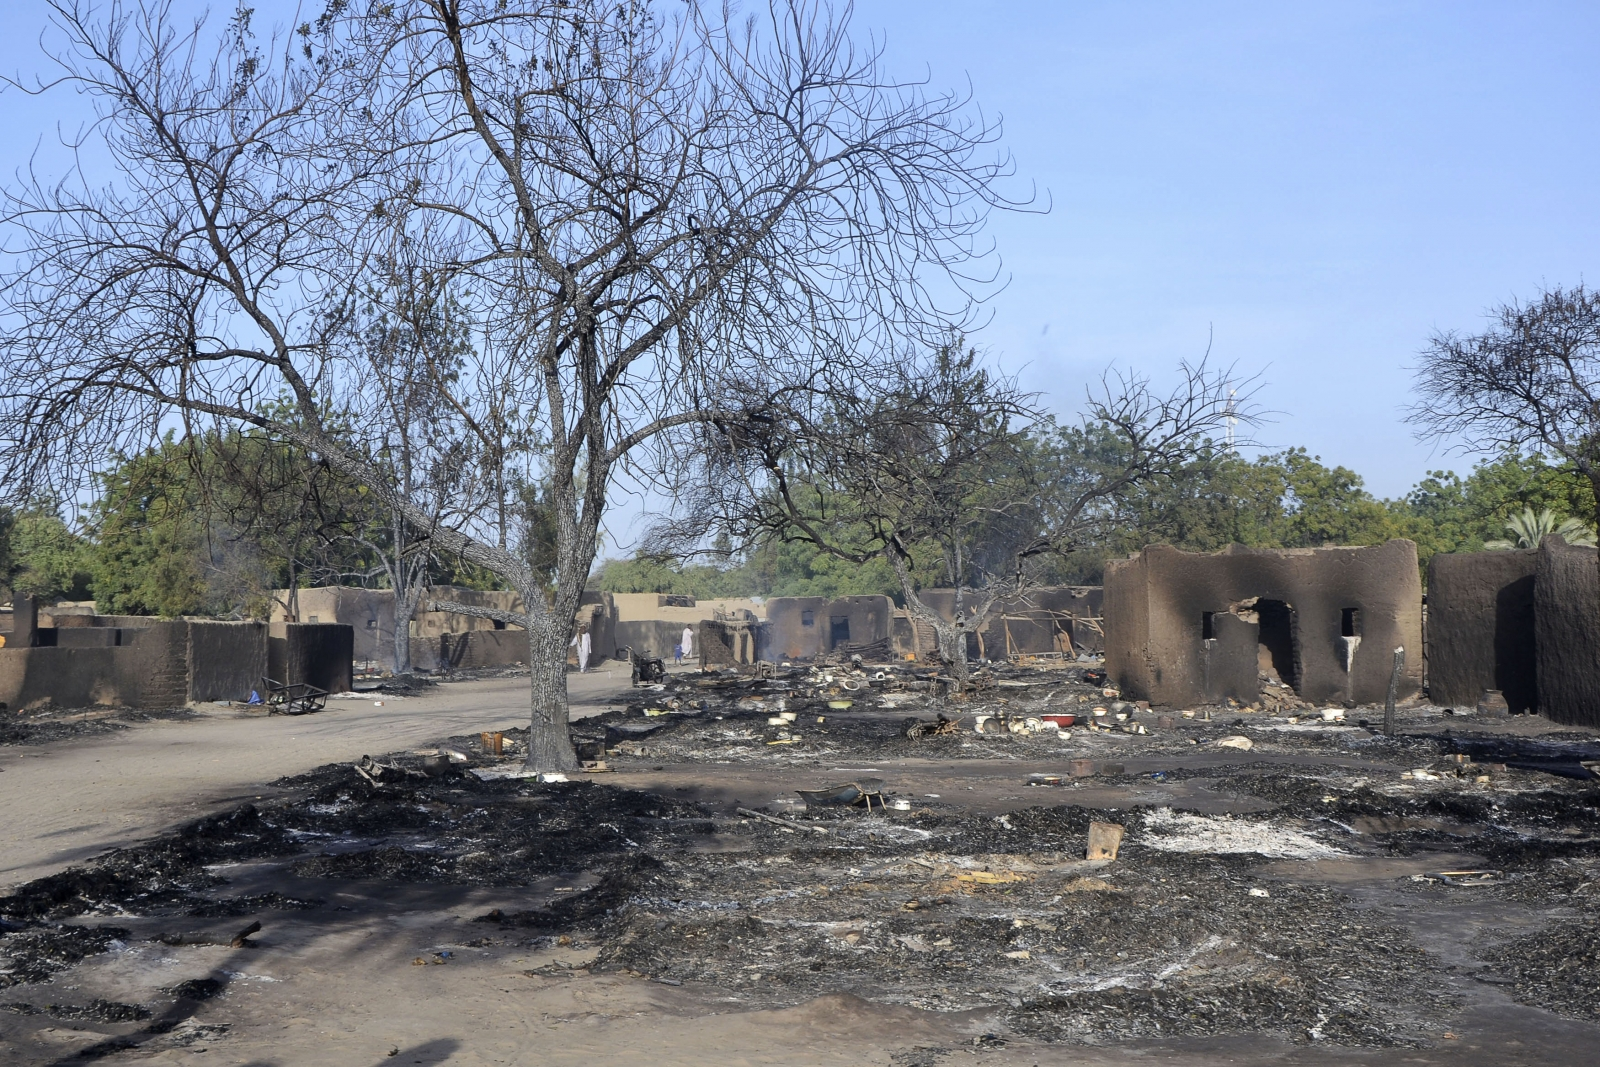 Boko Haram fighters attacked the village in Chad on Friday, the first known lethal attack in that country by the Nigerian militant group